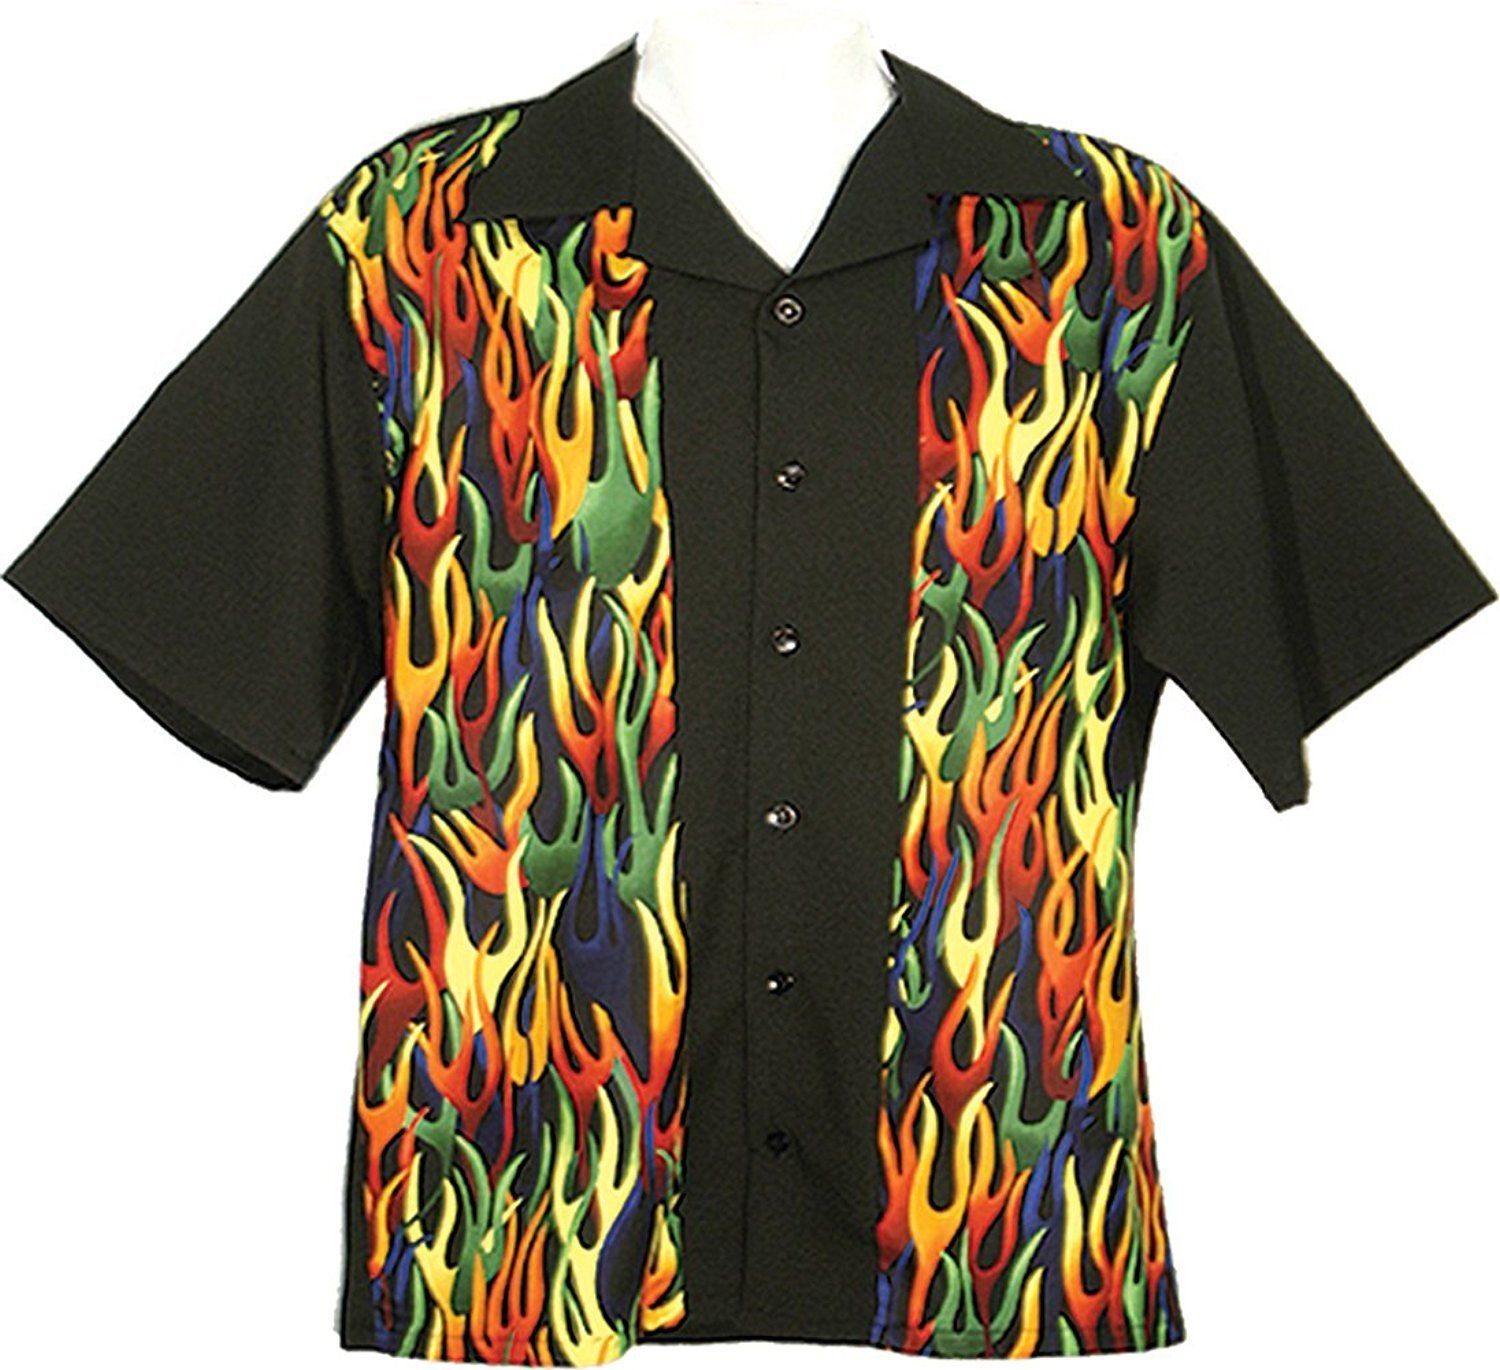 Tutti Retro Bowling Shirt with Flame Front Panels (Small)